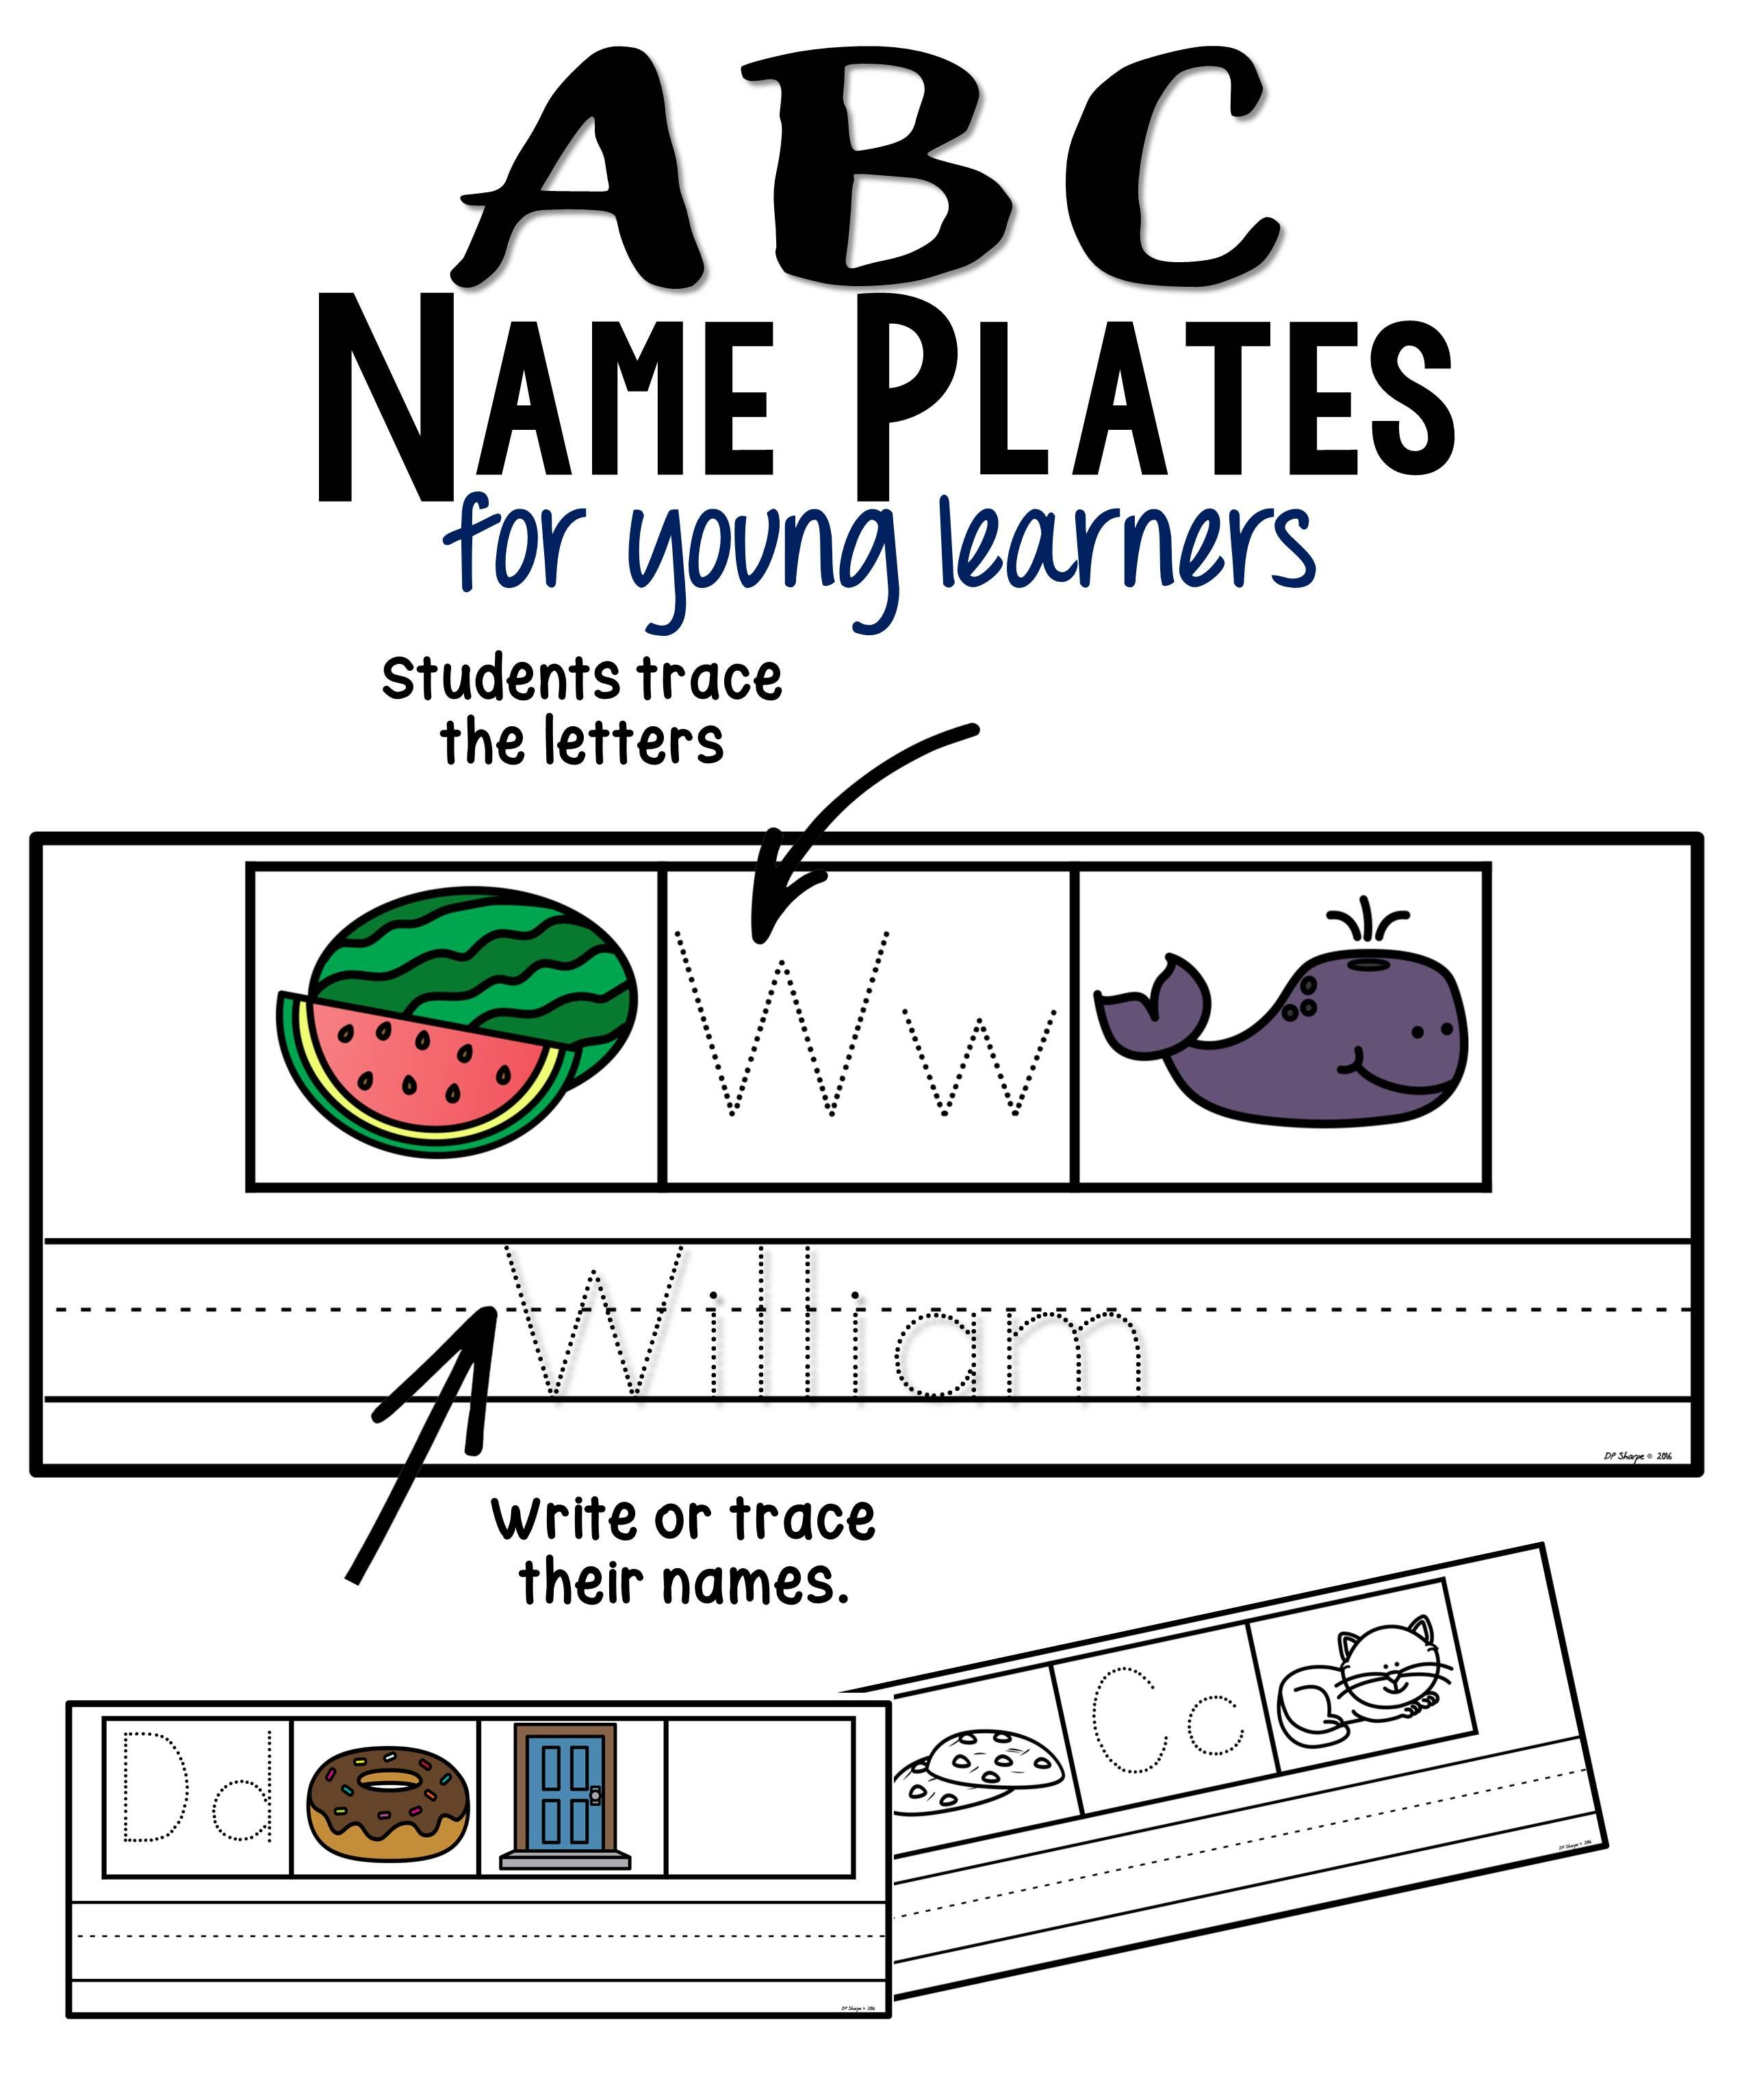 ABC Name Plates for Young Learners Name plate, Letter